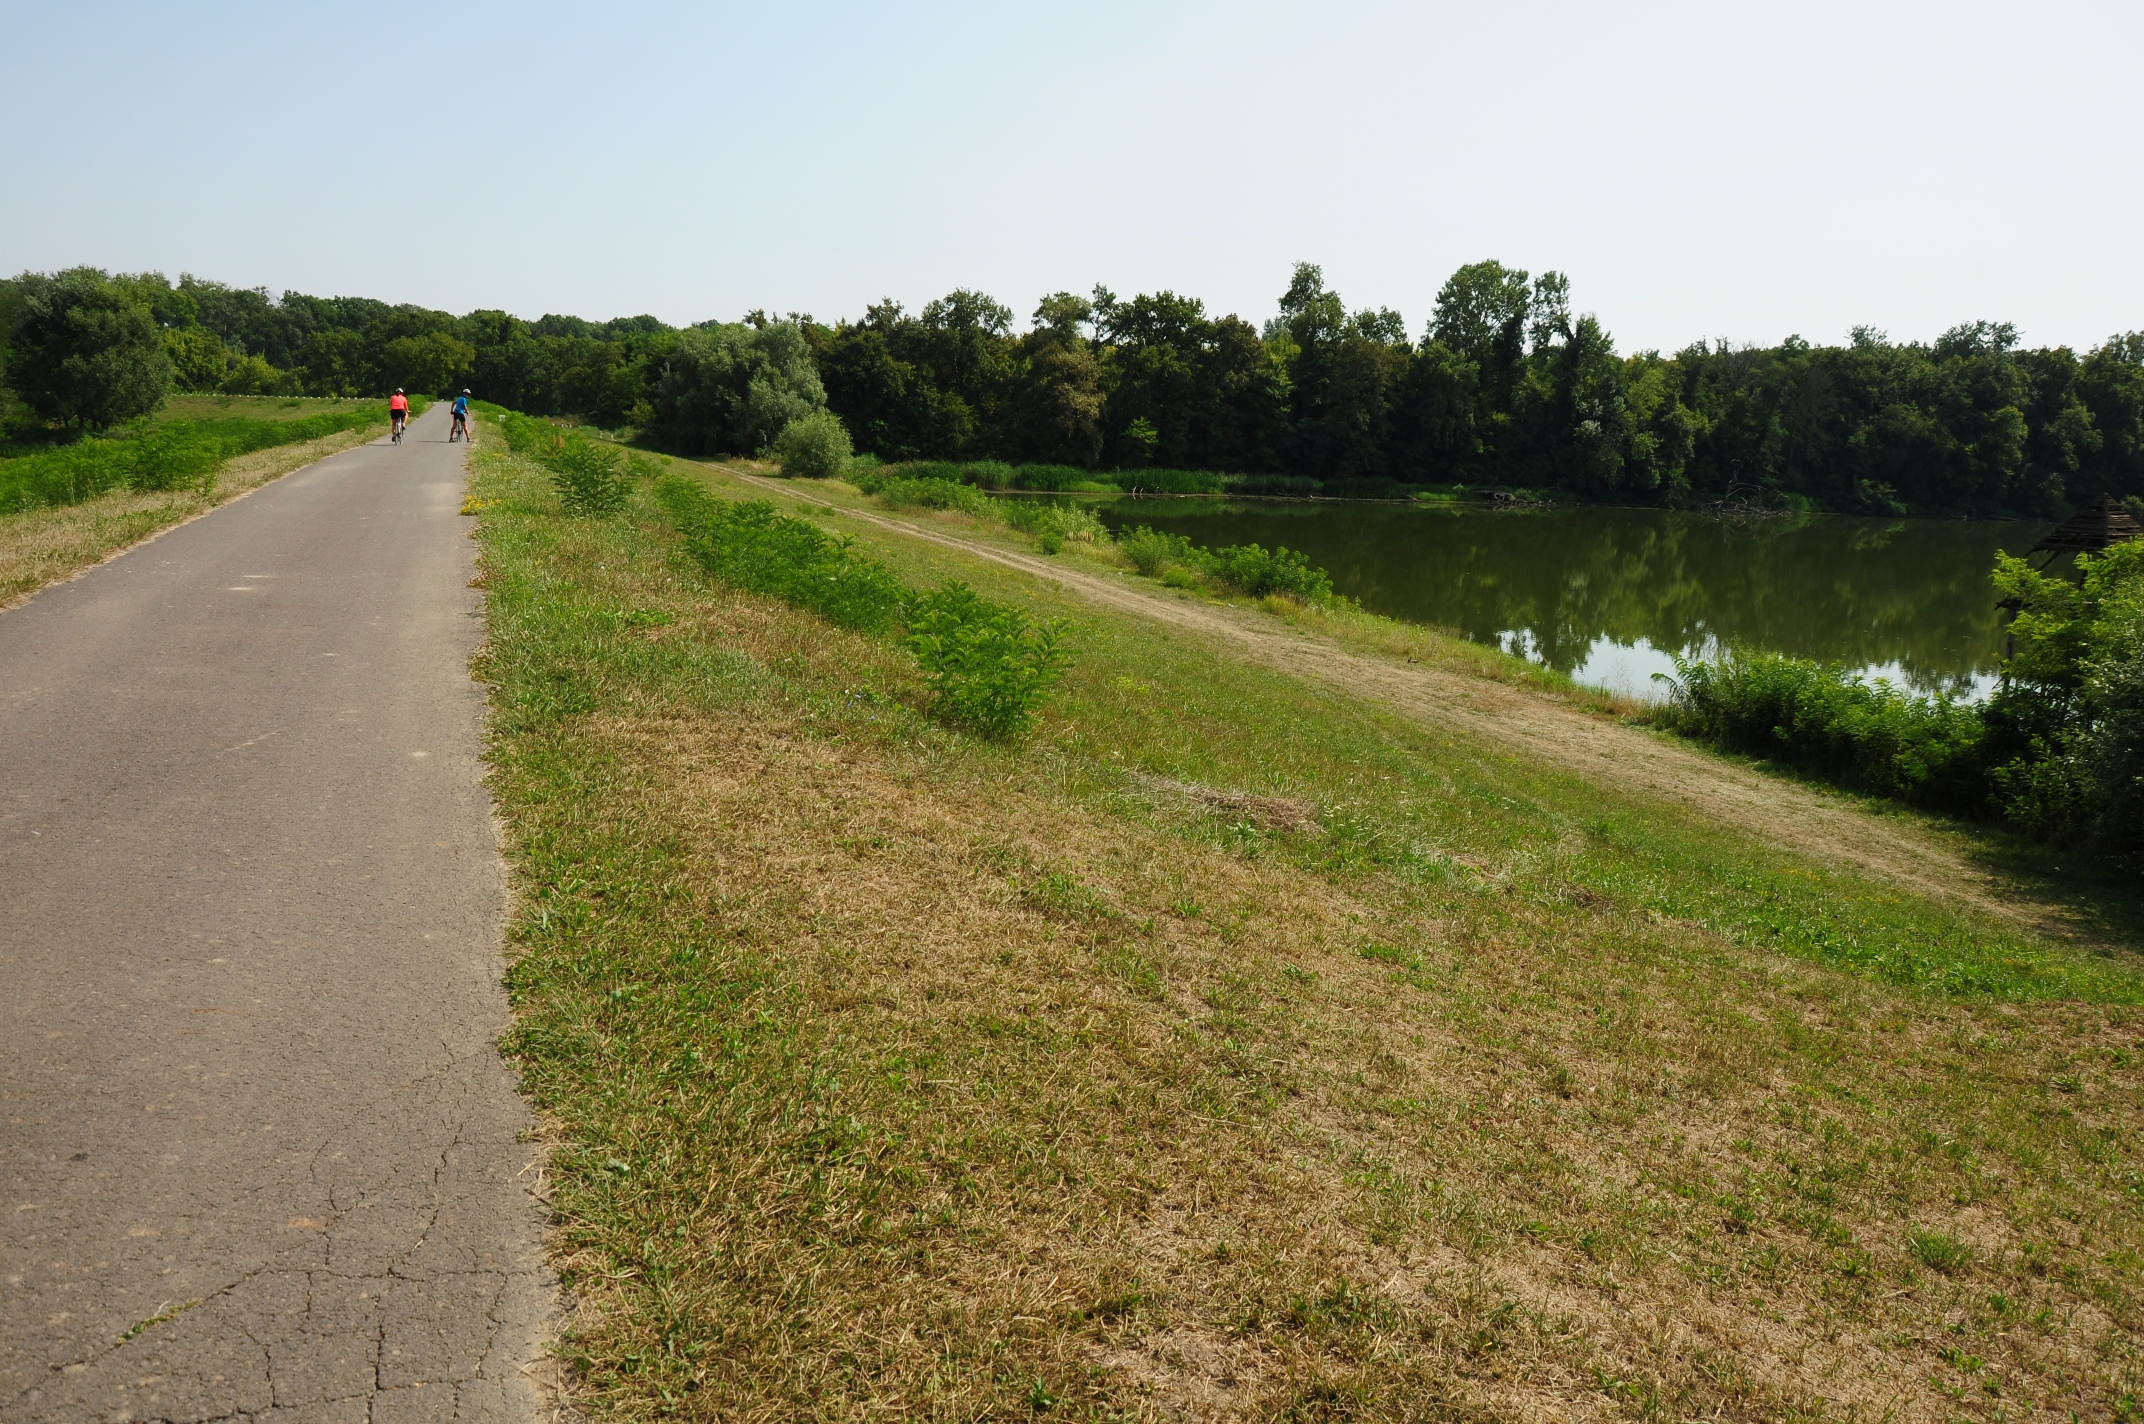 Cycling past the river Tisza